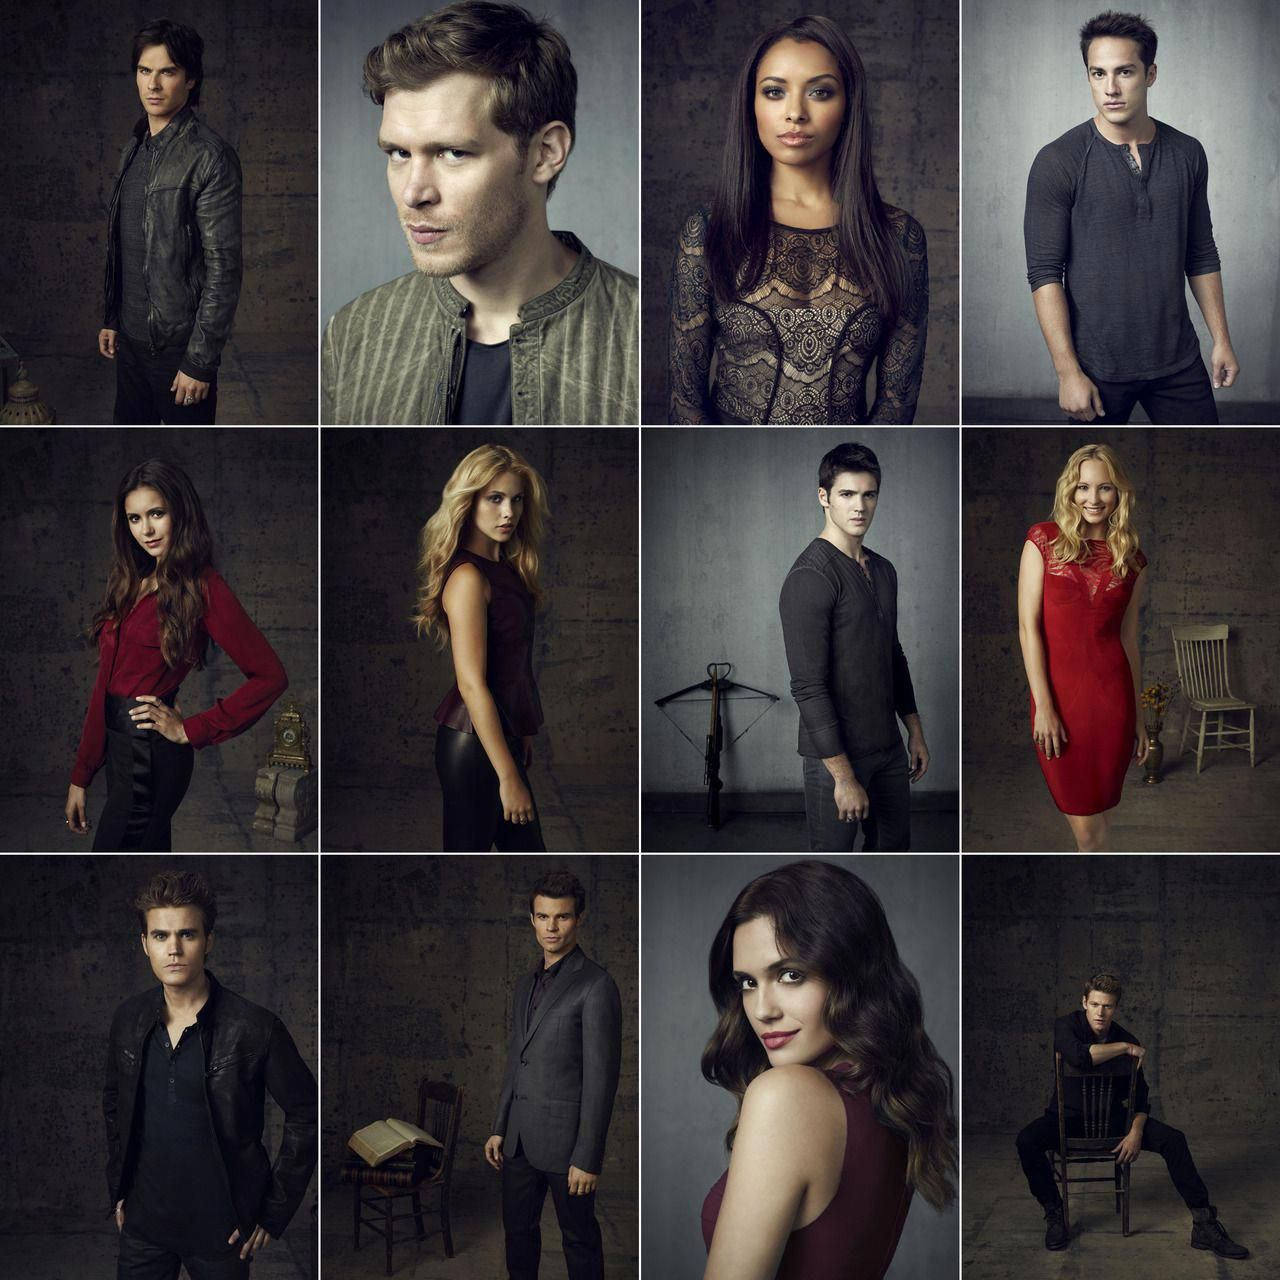 The Vampire Diaries season 4 cast portraits #BonnieTyler | Bonnie